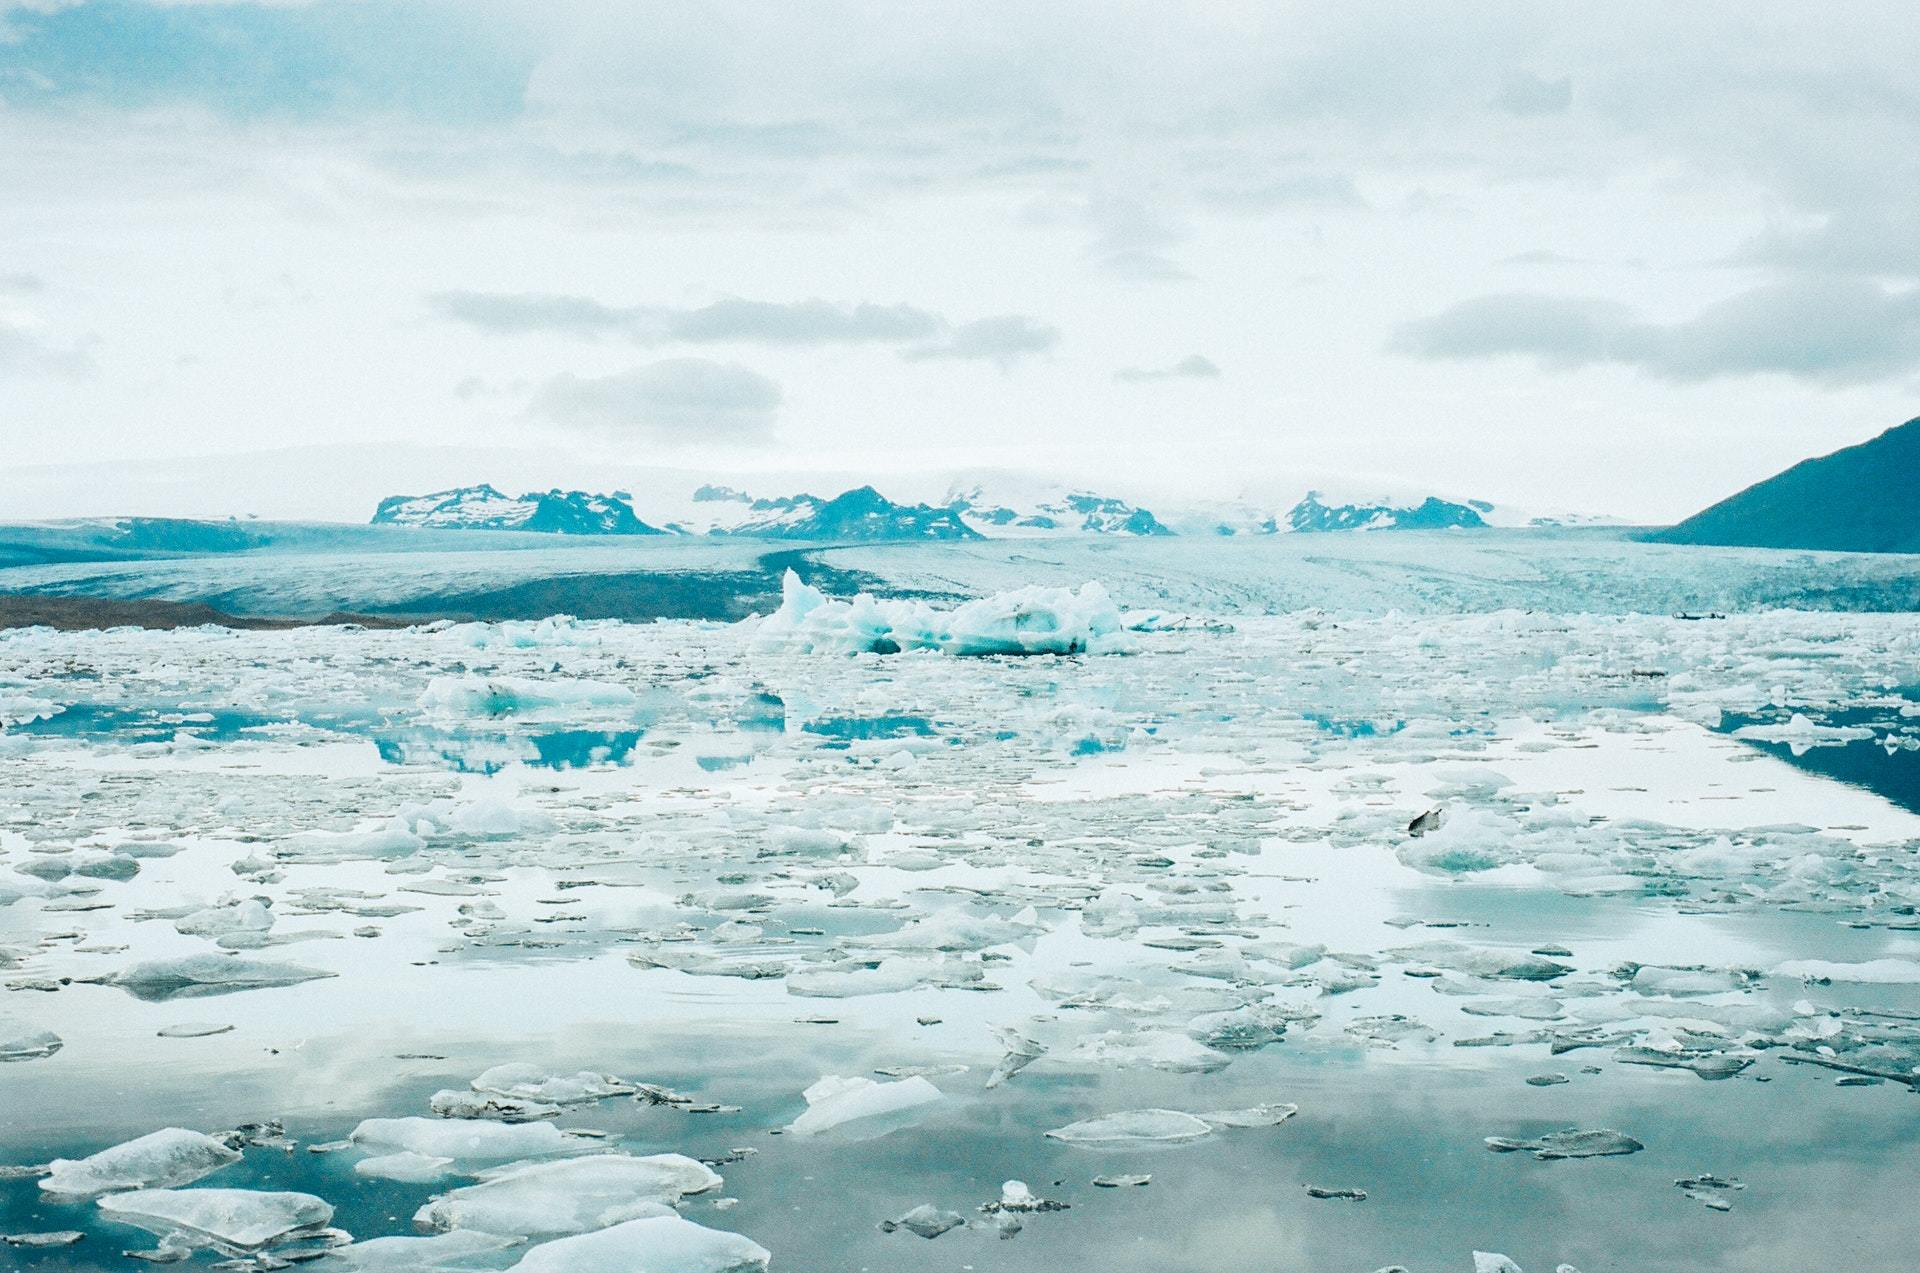 View over an expanse of water with fragmented broken ice against a backdrop of icy mountains